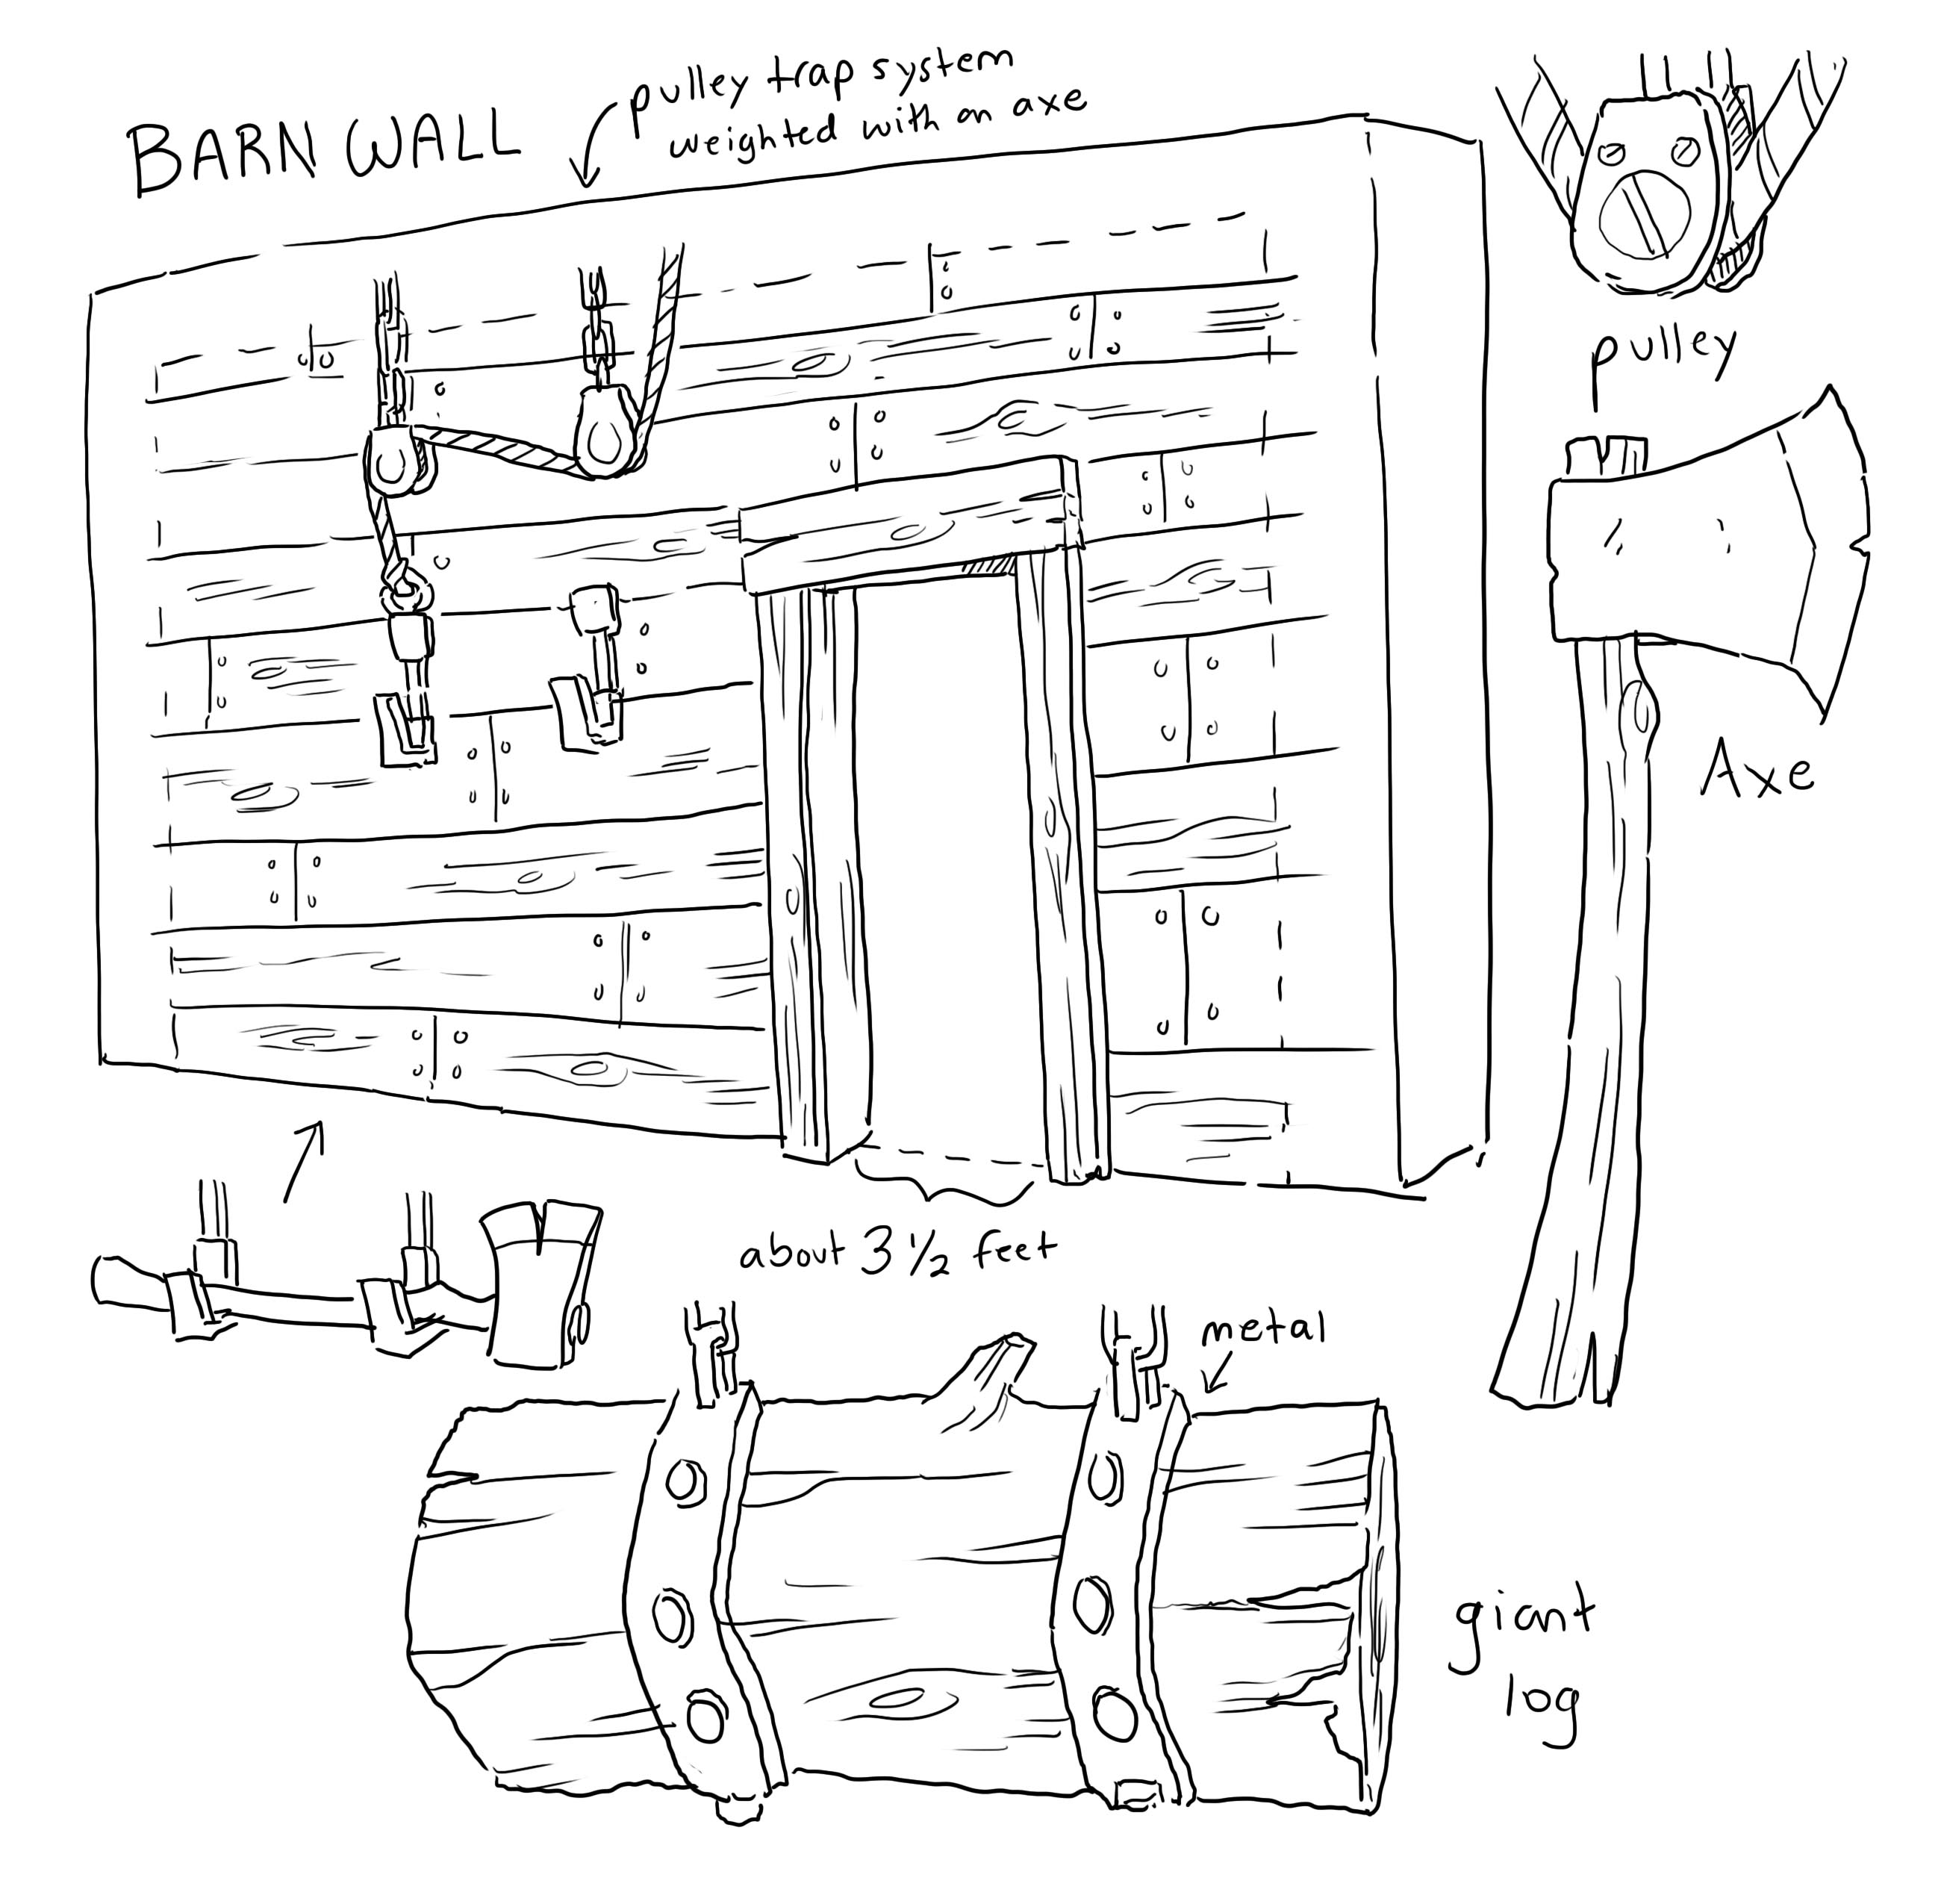 JAD-Barn Wall Design